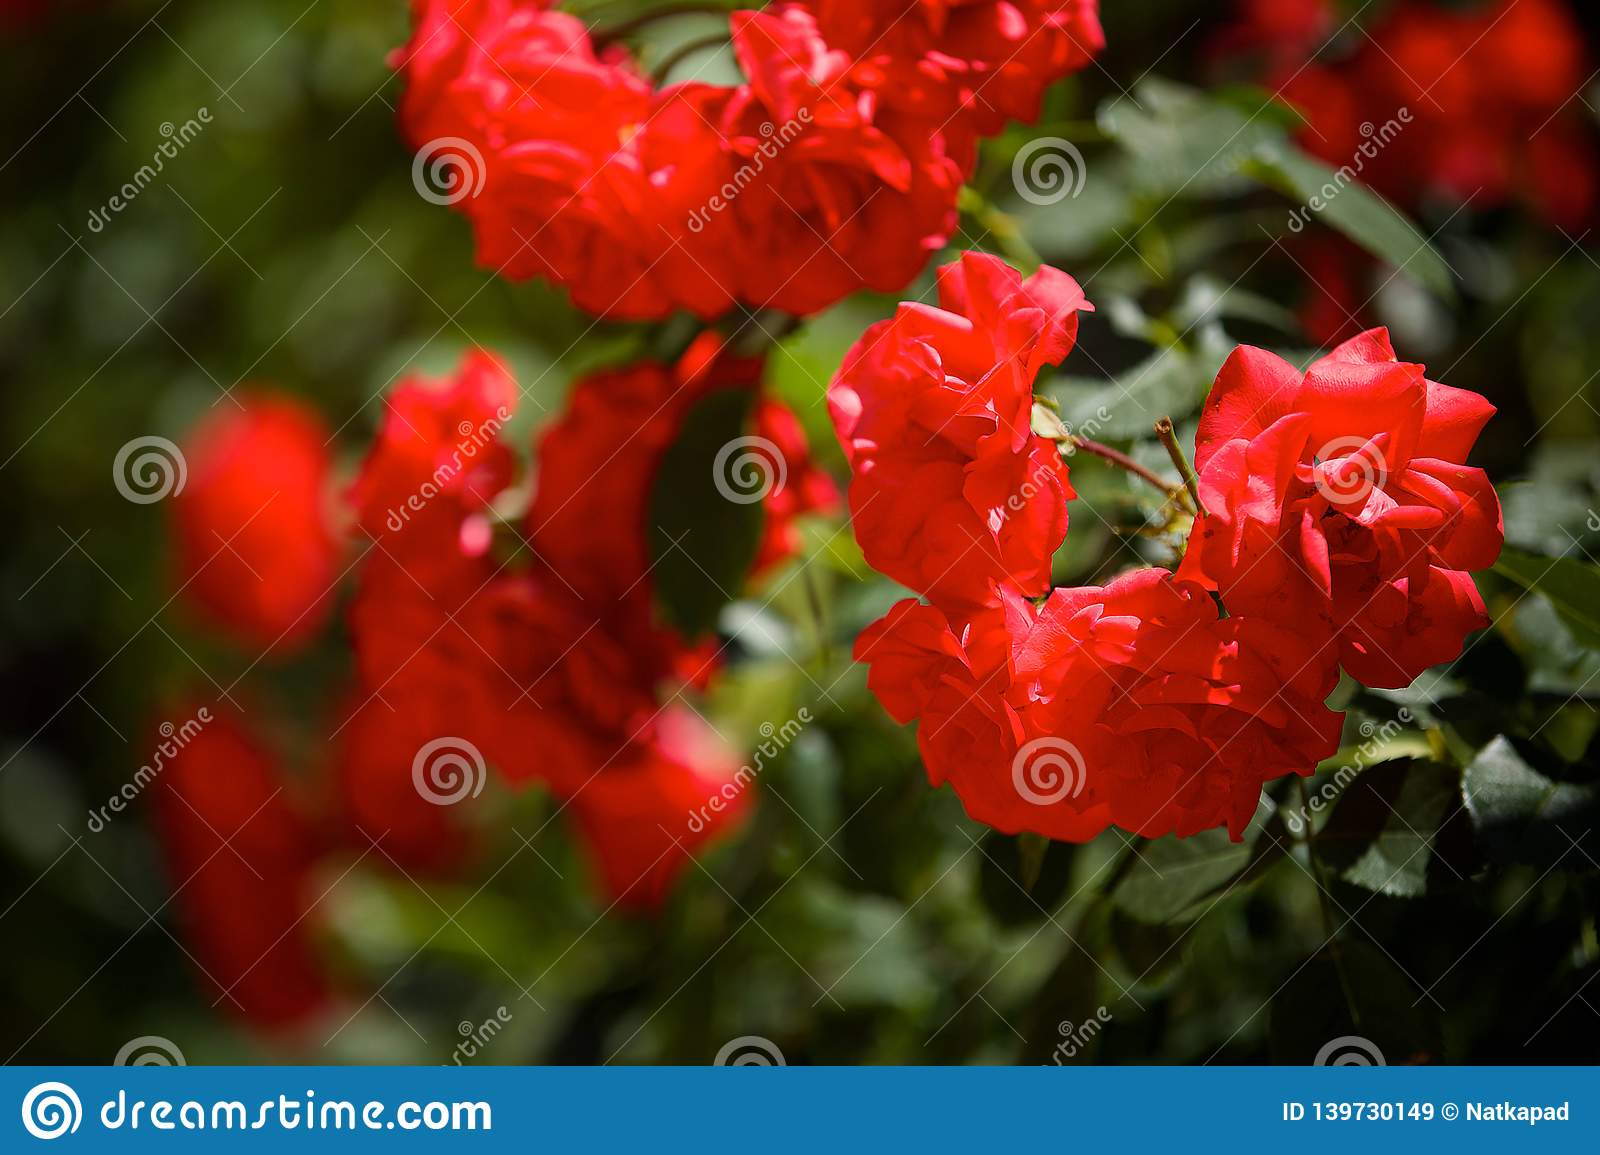 Red rose flower close-up